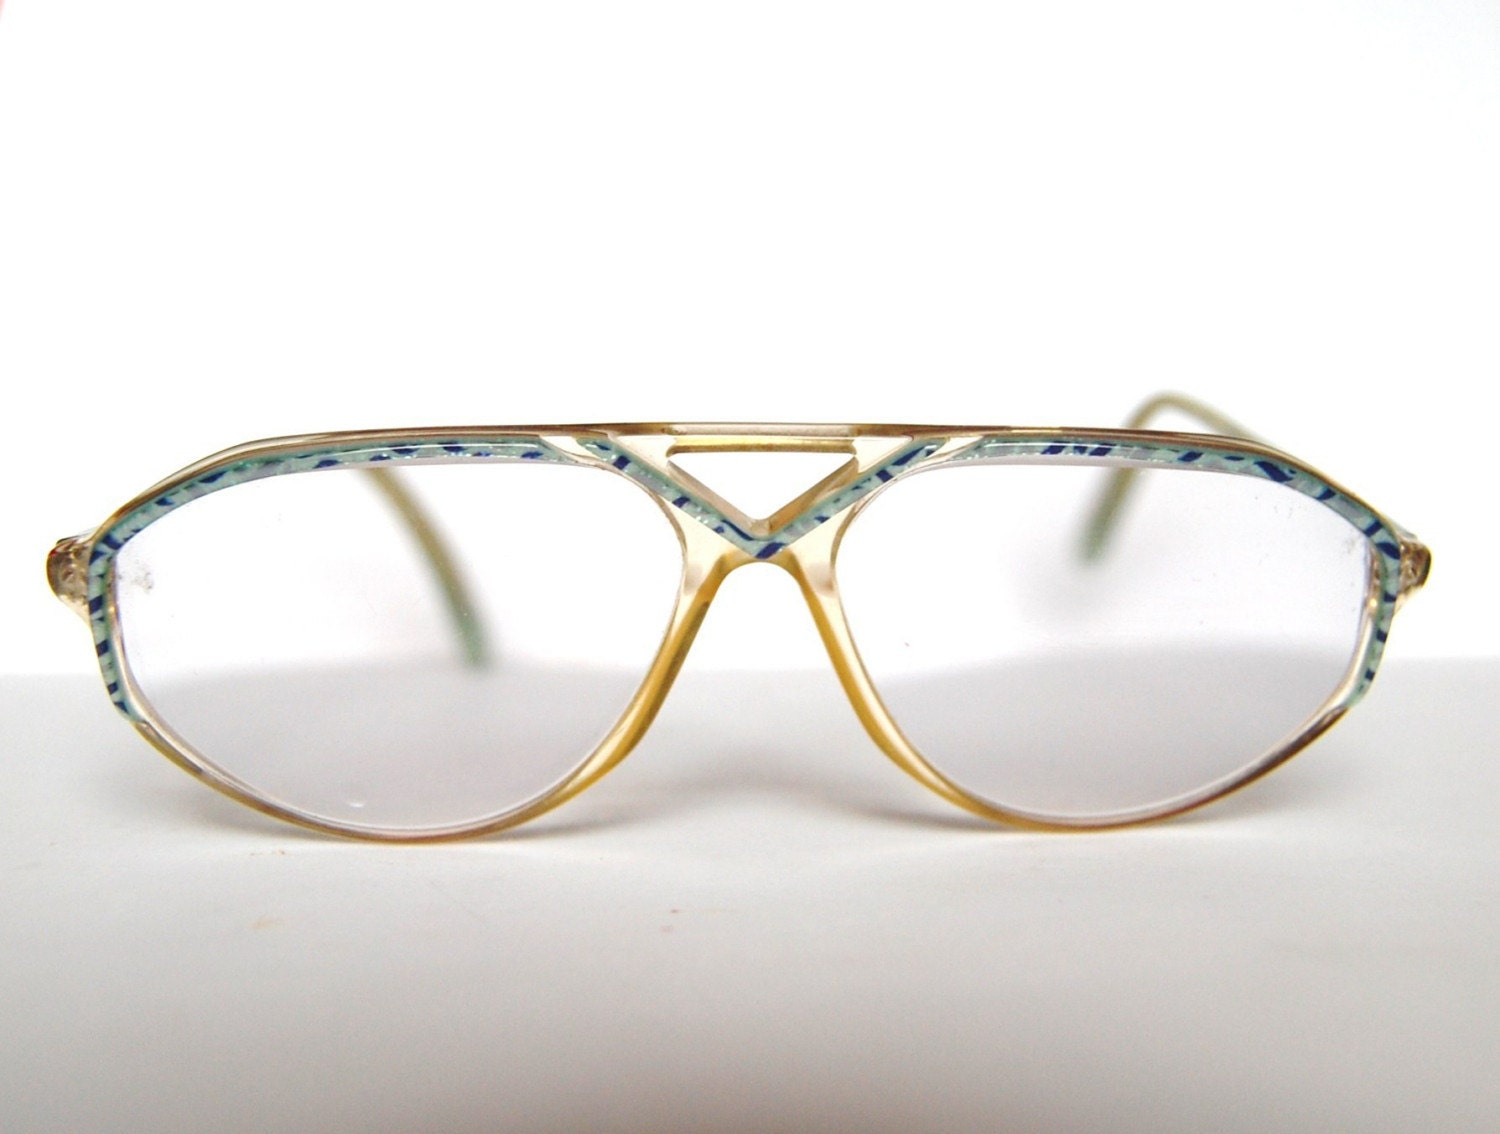 Vintage eyeglasses from Germany in blue colors by RetroEyewear